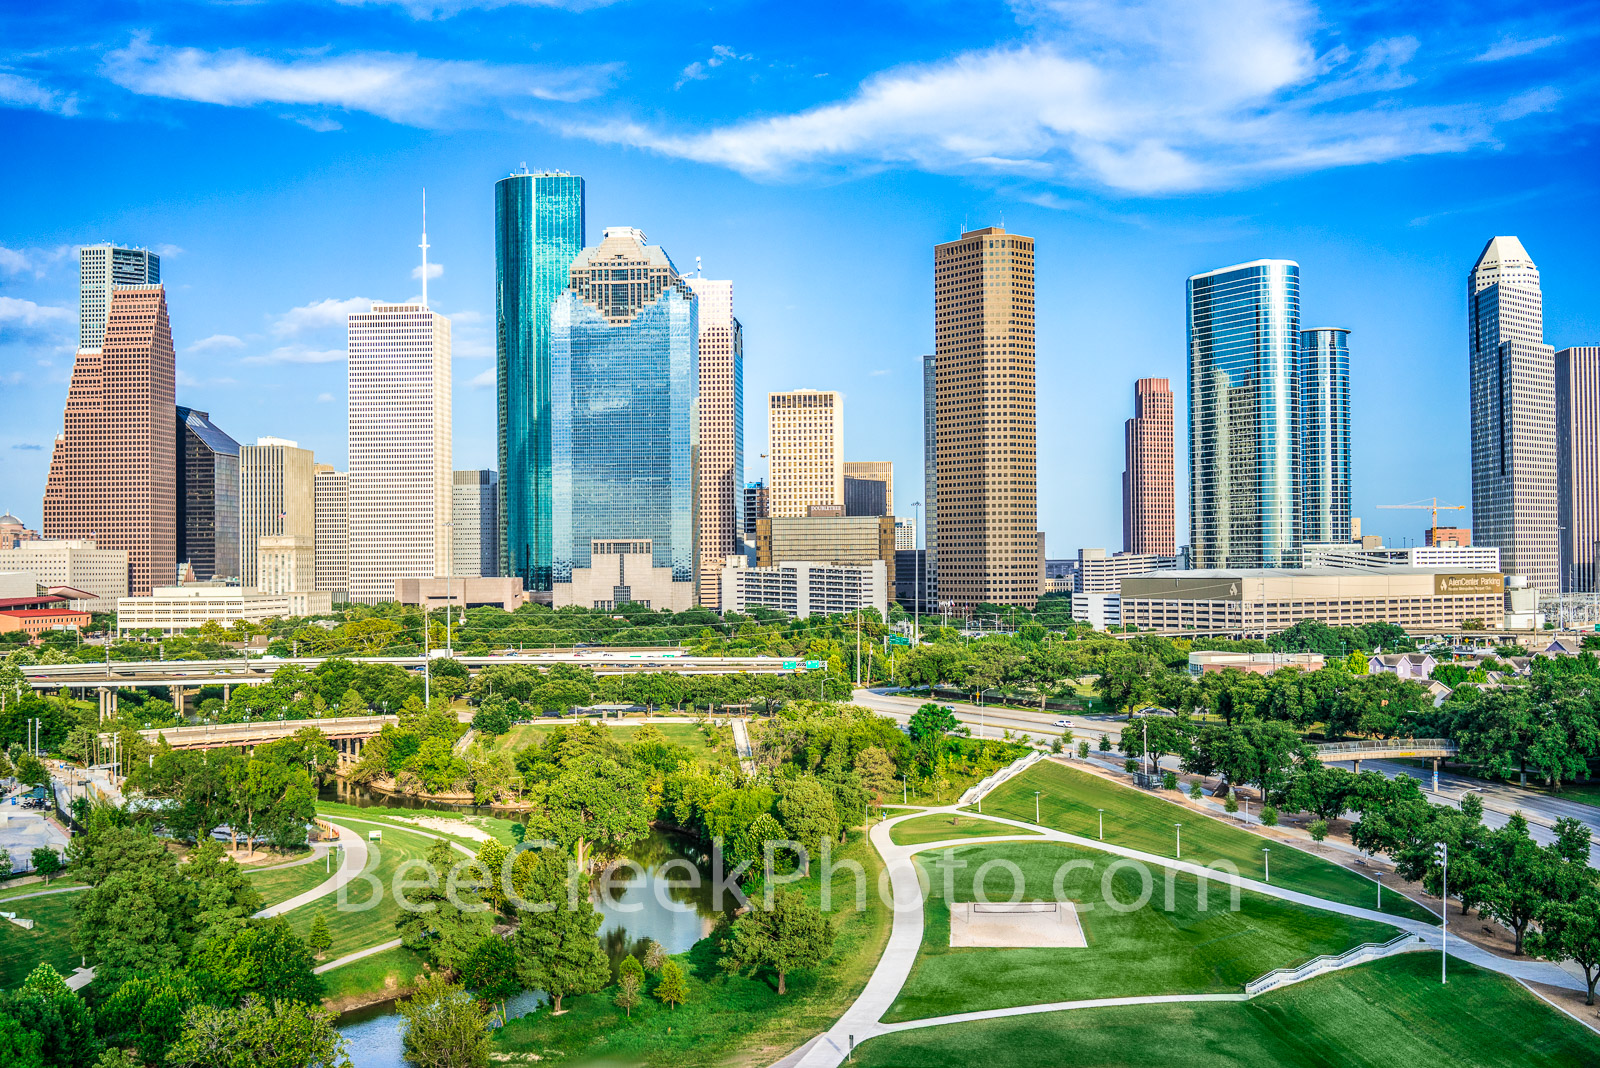 Houston Skyline Aerial View - This is another aerial view of a urban landscape of downtown Houston skyline from a city park with...